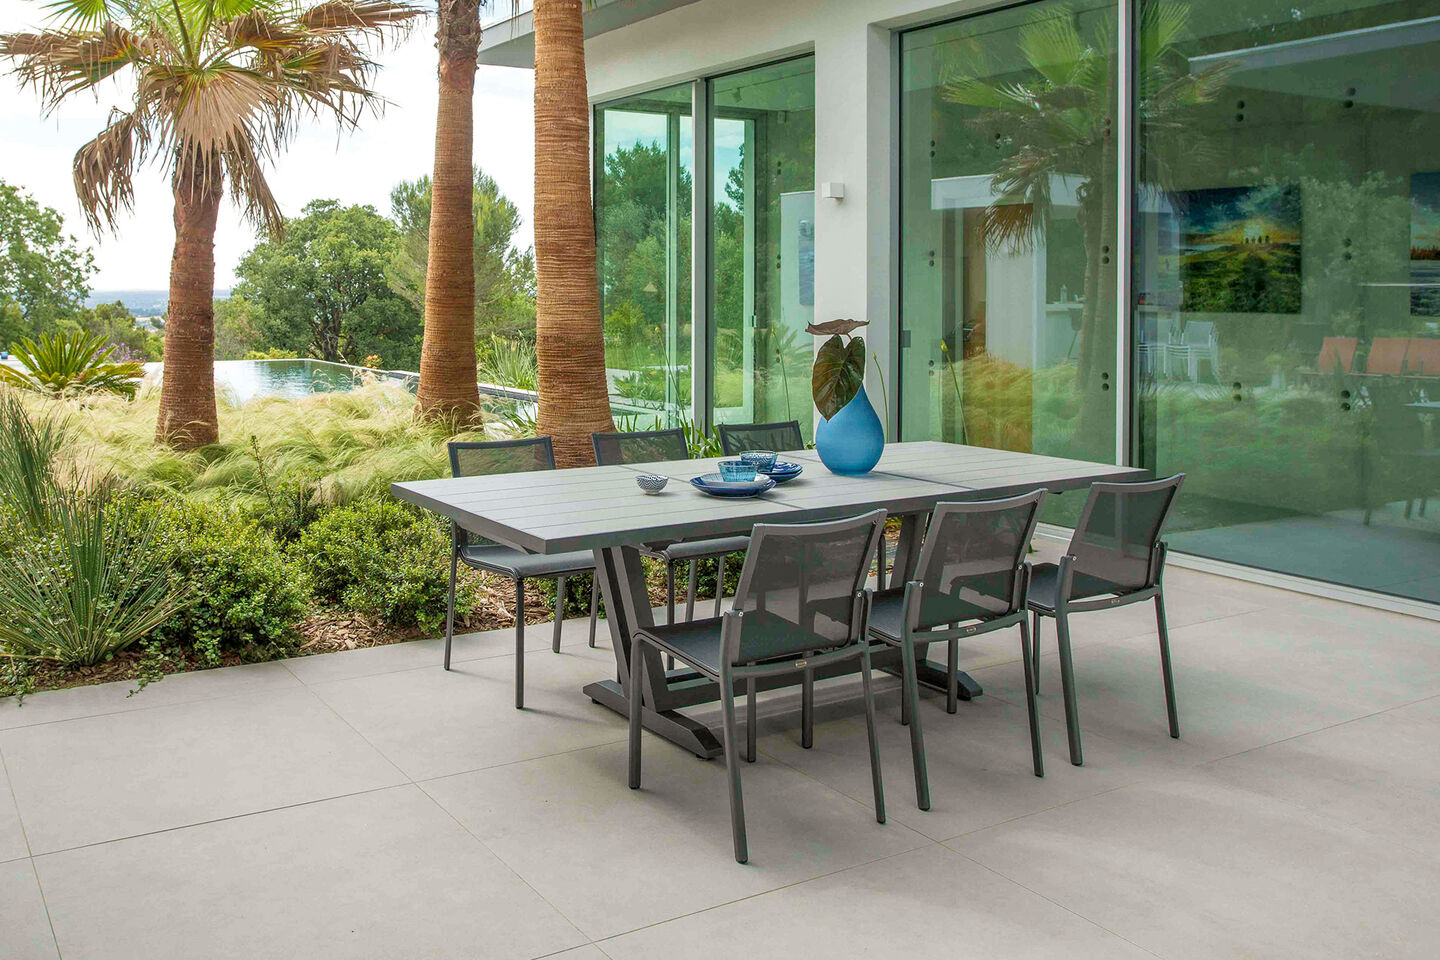 Amaka by Les Jardins dining furniture collection on concrete patio